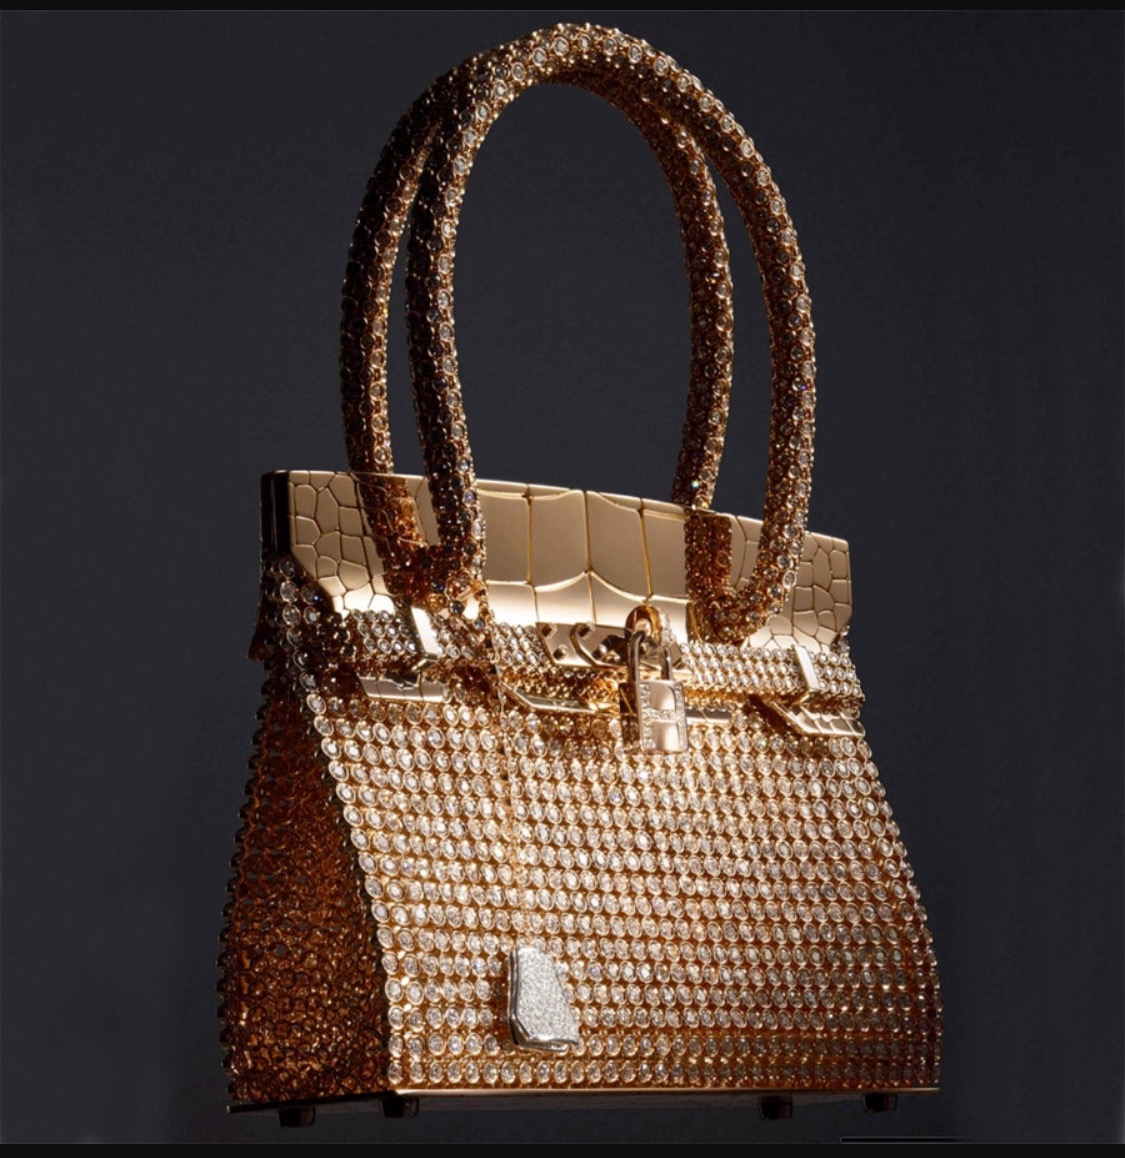 Discover The Top 5 Most Expensive Handbags in the World most expensive handbags Discover The Top 5 Most Expensive Handbags in the World image 280